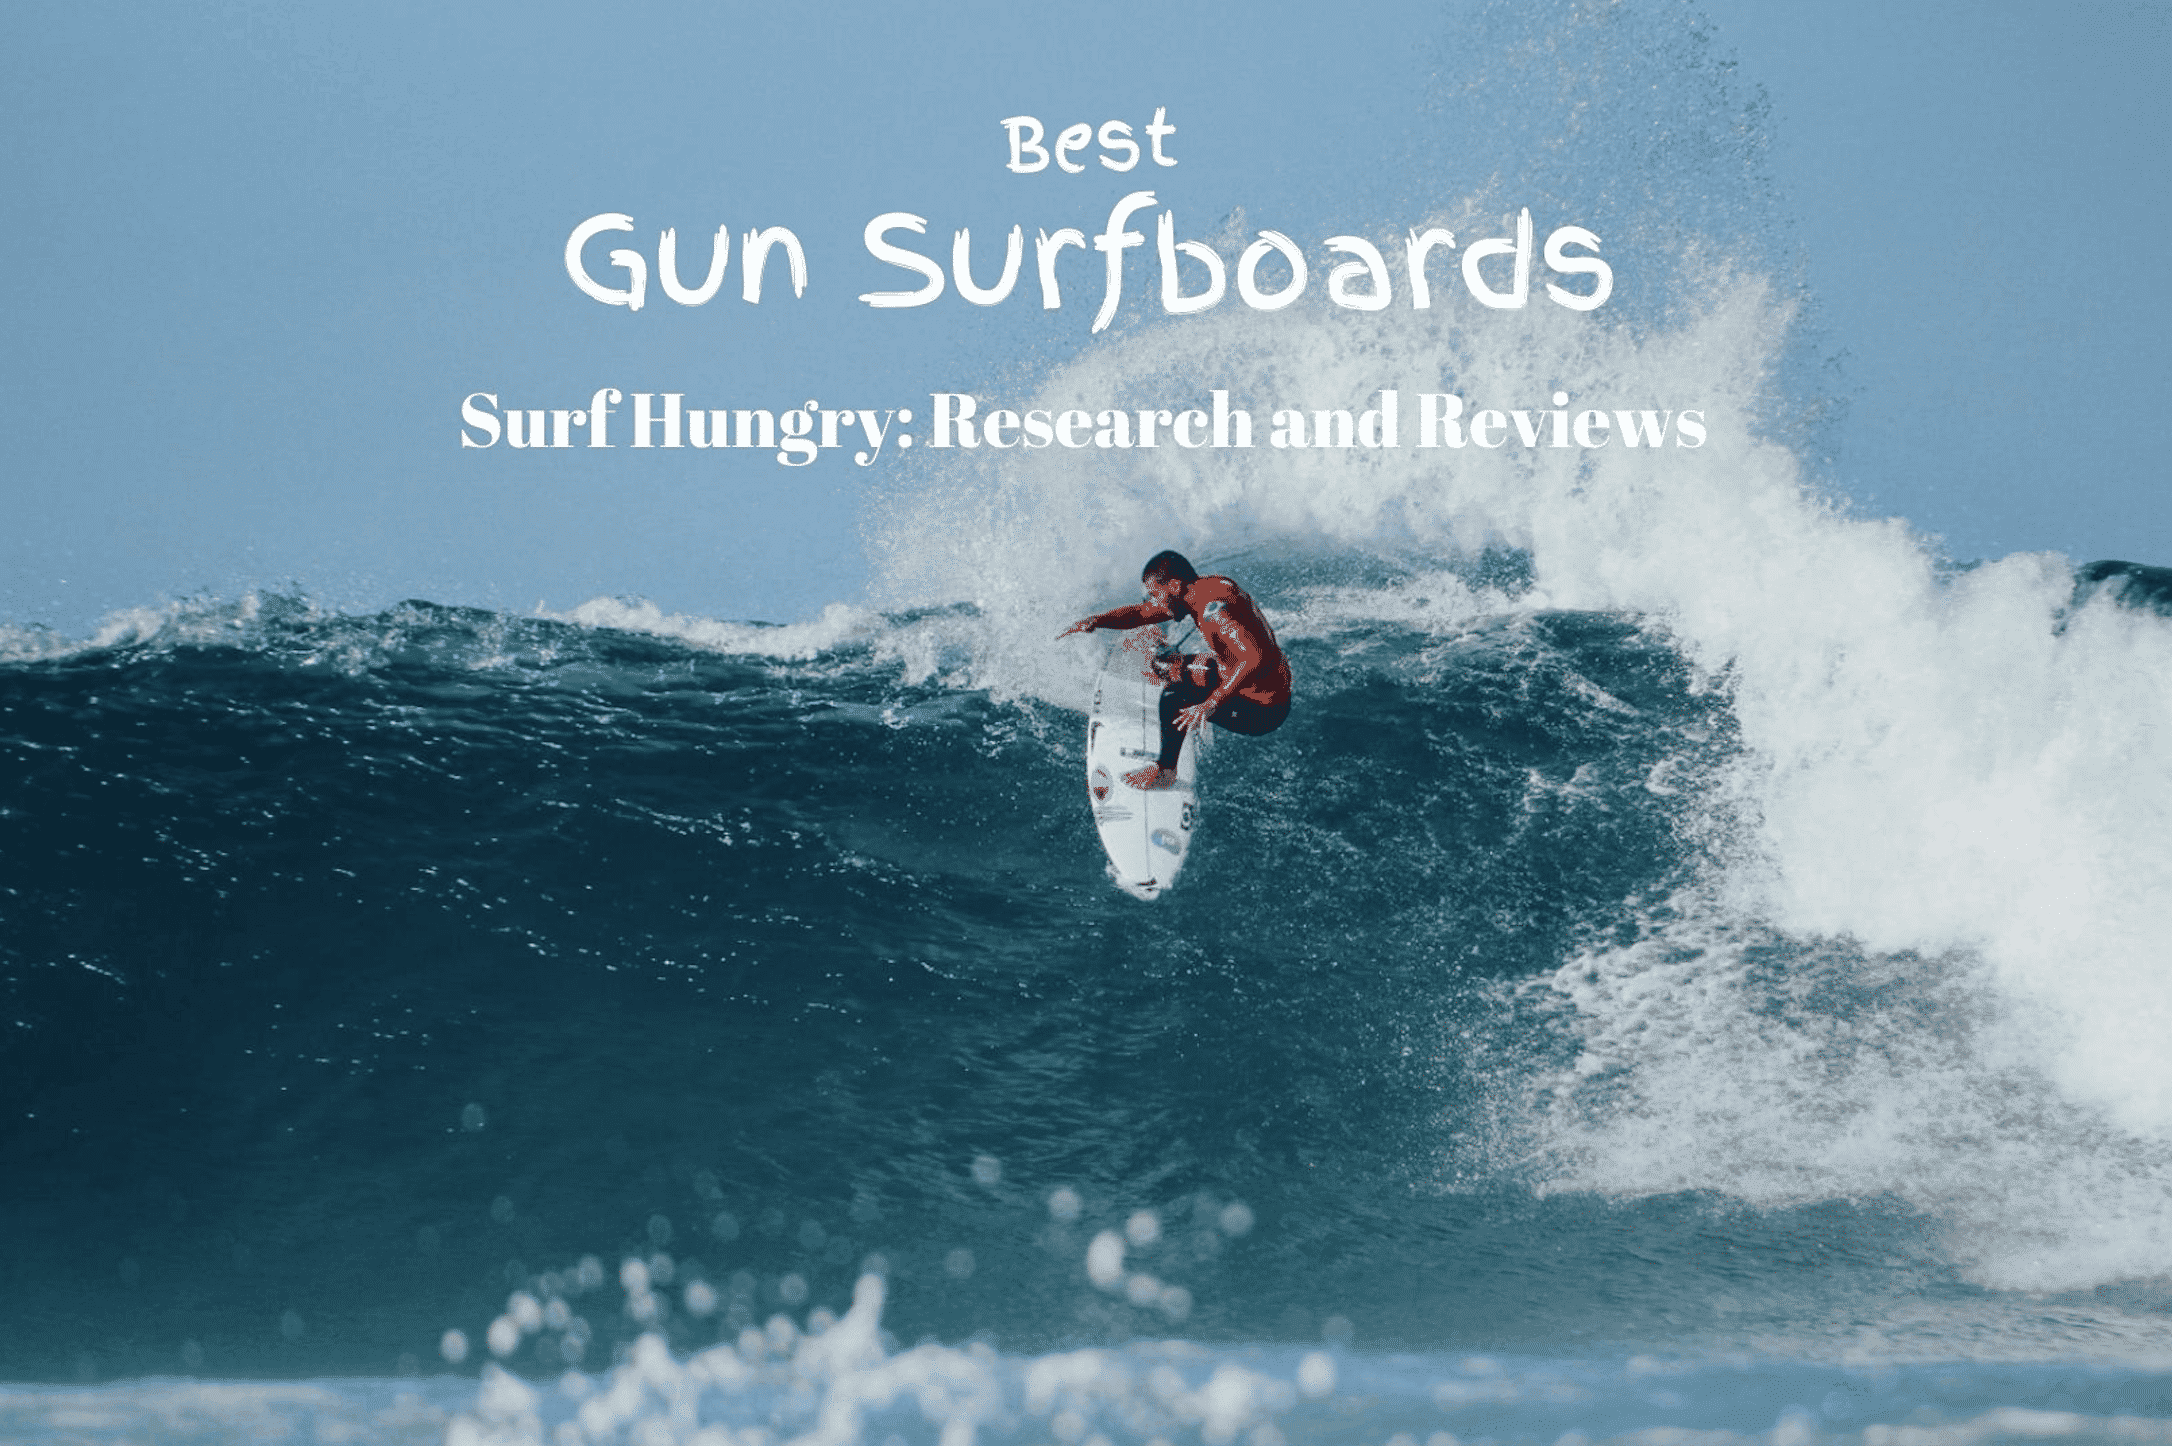 best gun surfboards